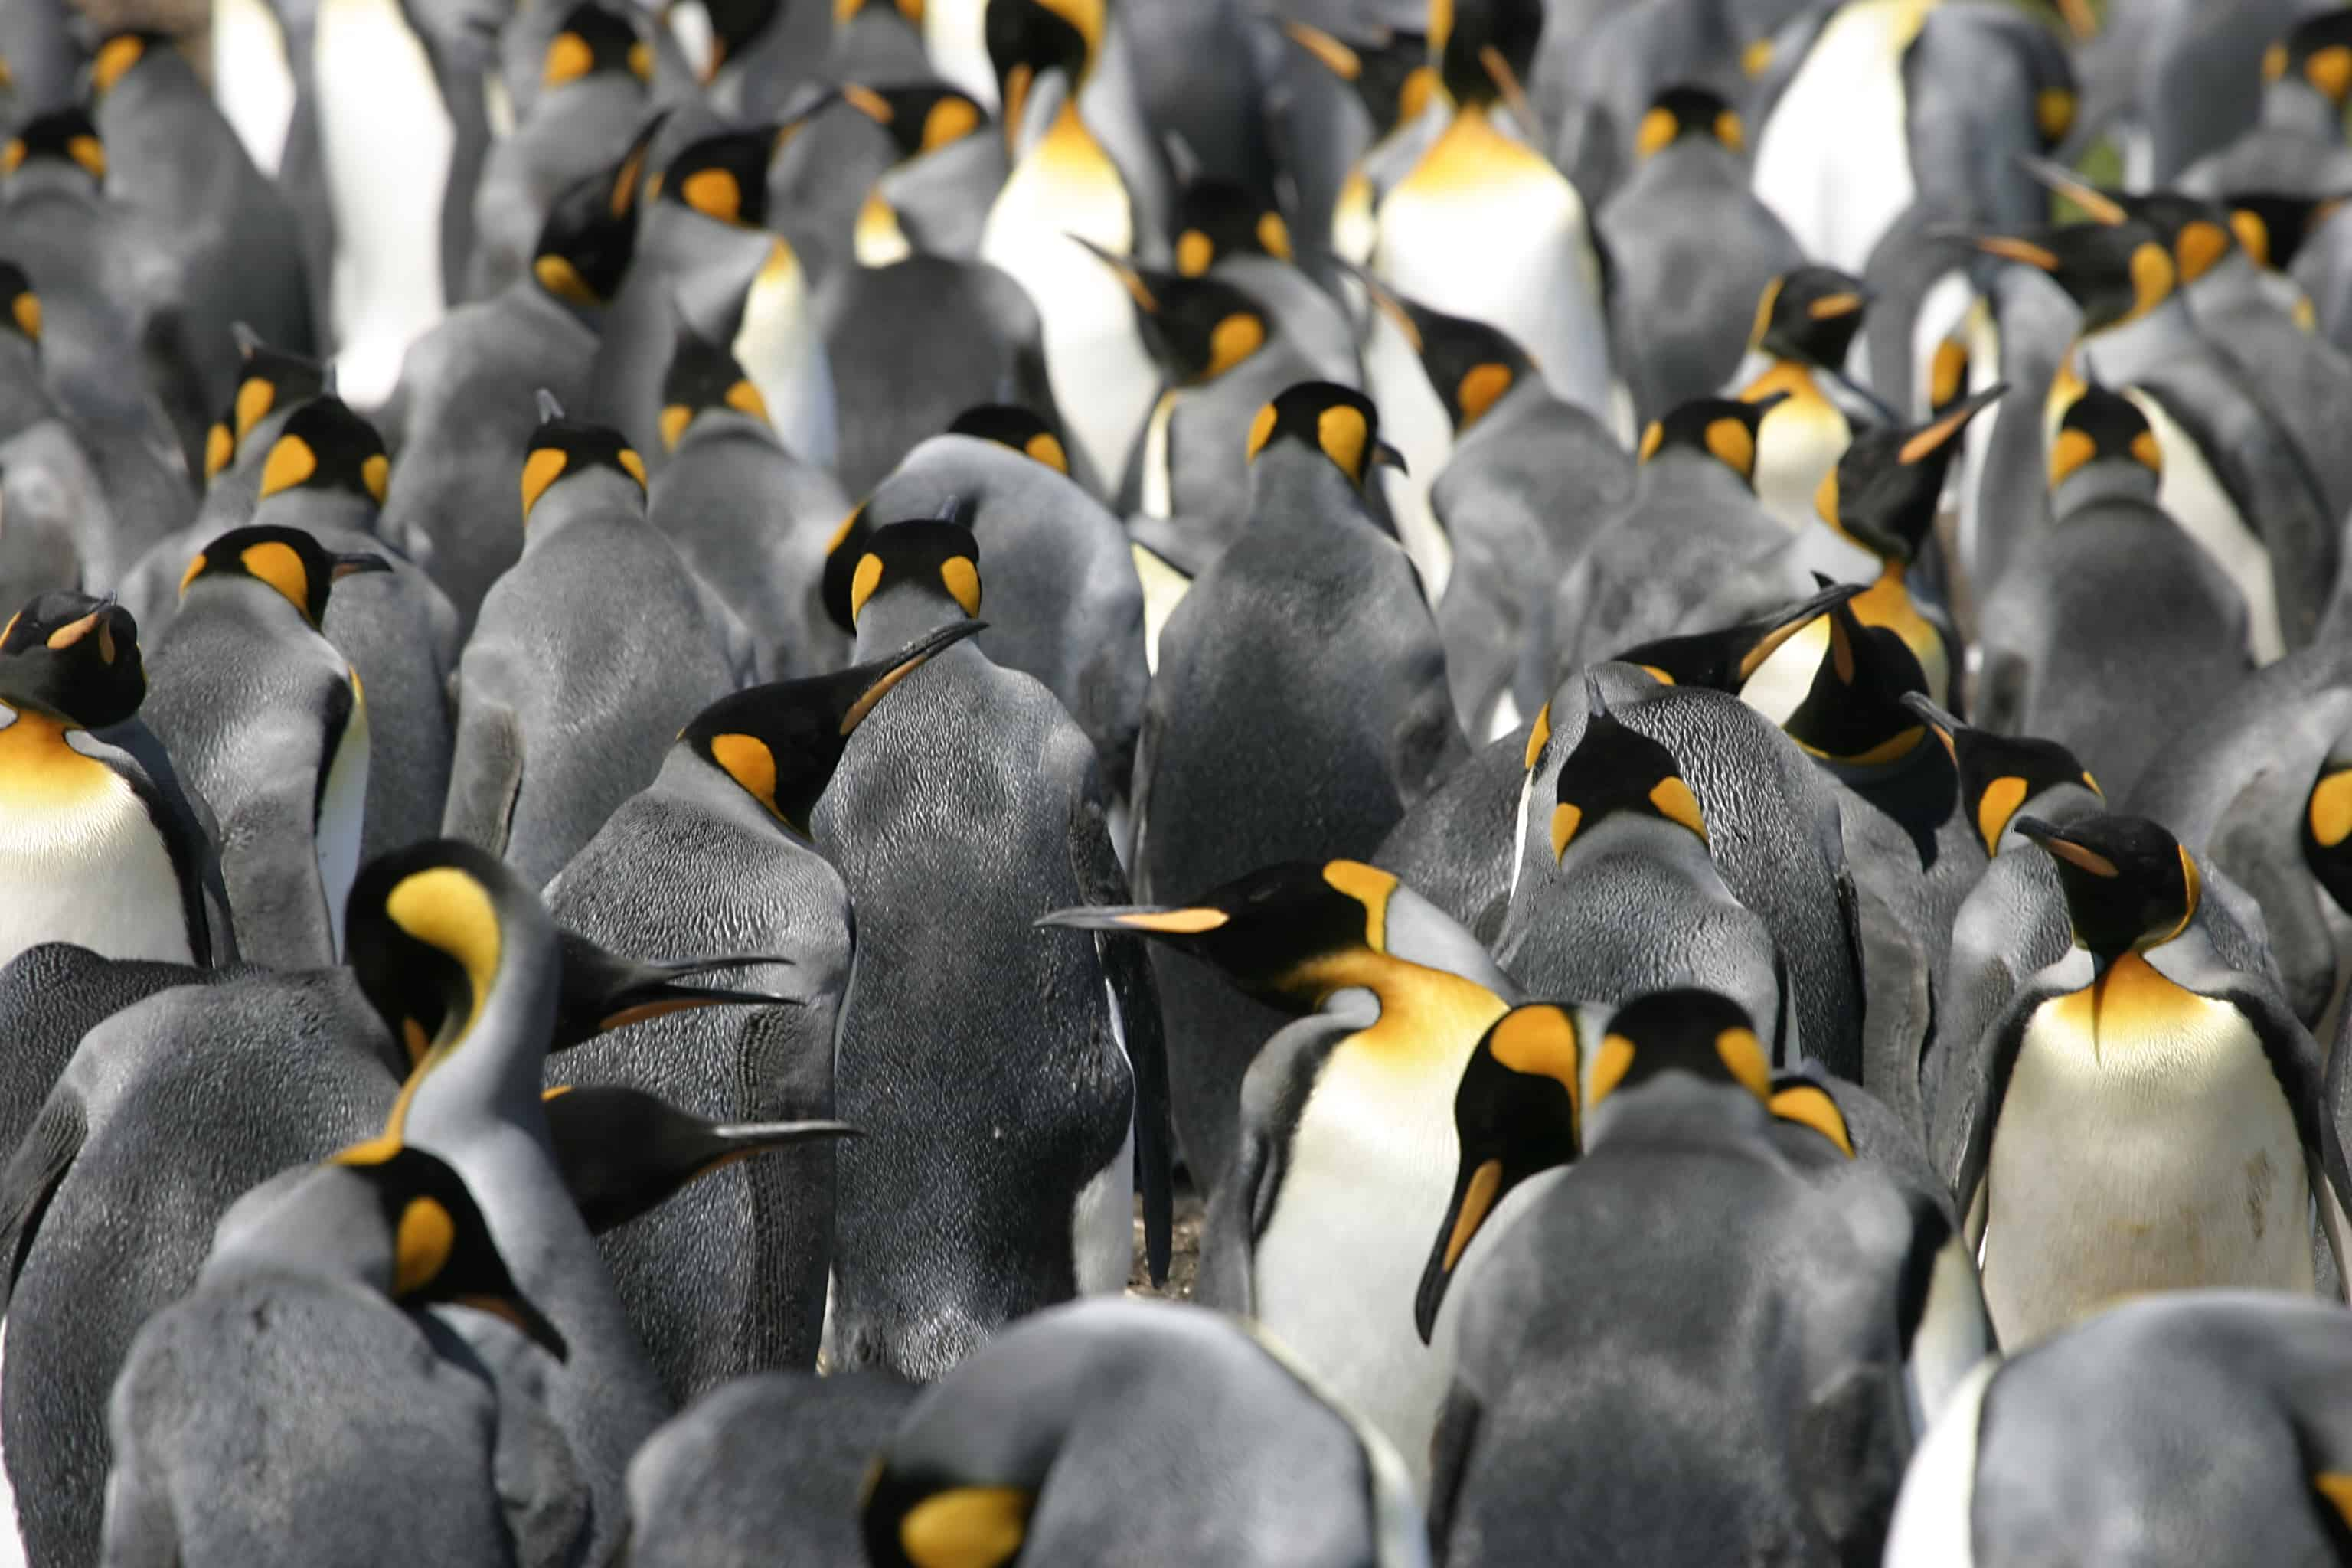 King penguins in the Falkland Islands; Copyright: Tim Earl